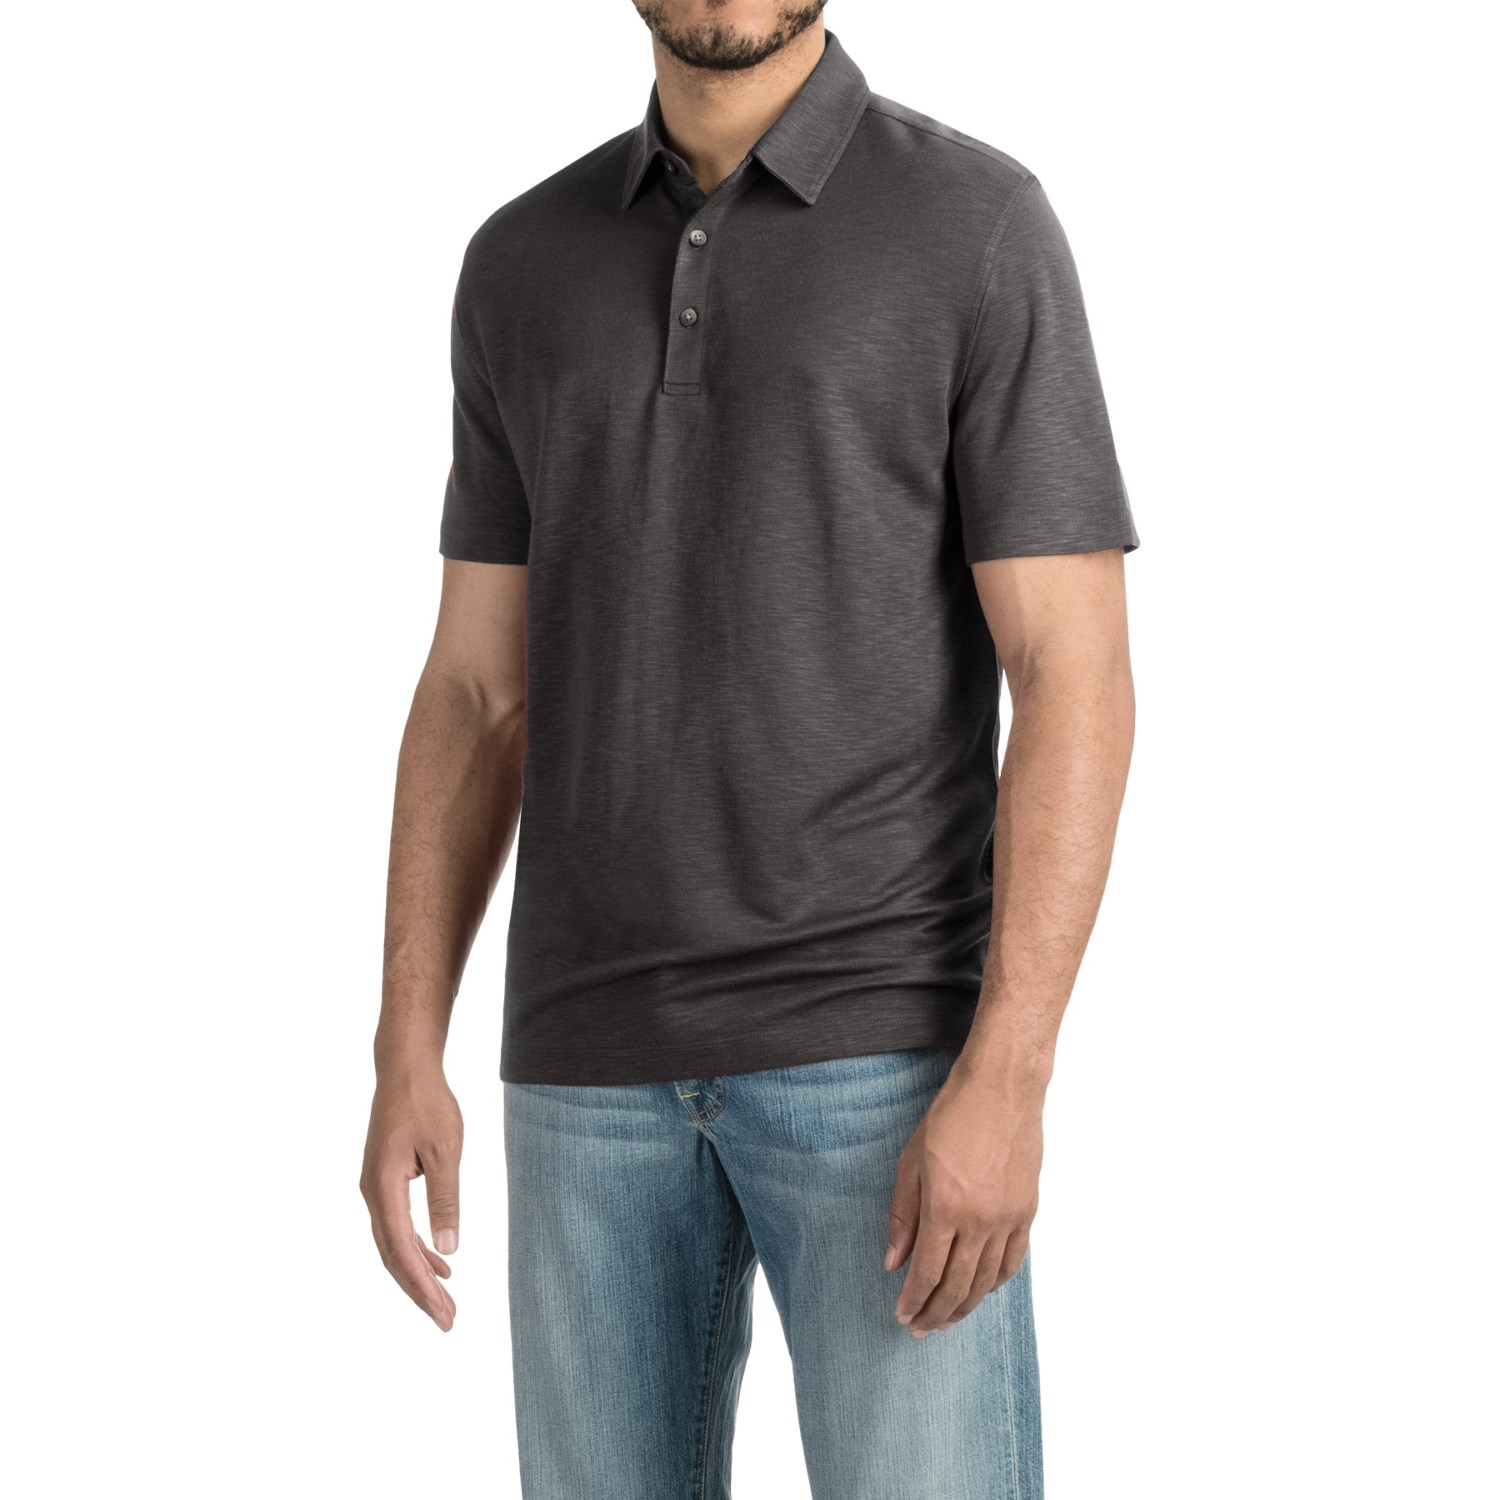 Shop a wide variety of men's pique knit polo shirts at wholesale prices! Find blank adult pique polos in % cotton from Hanes, Anvil, and more. Fast shipping!